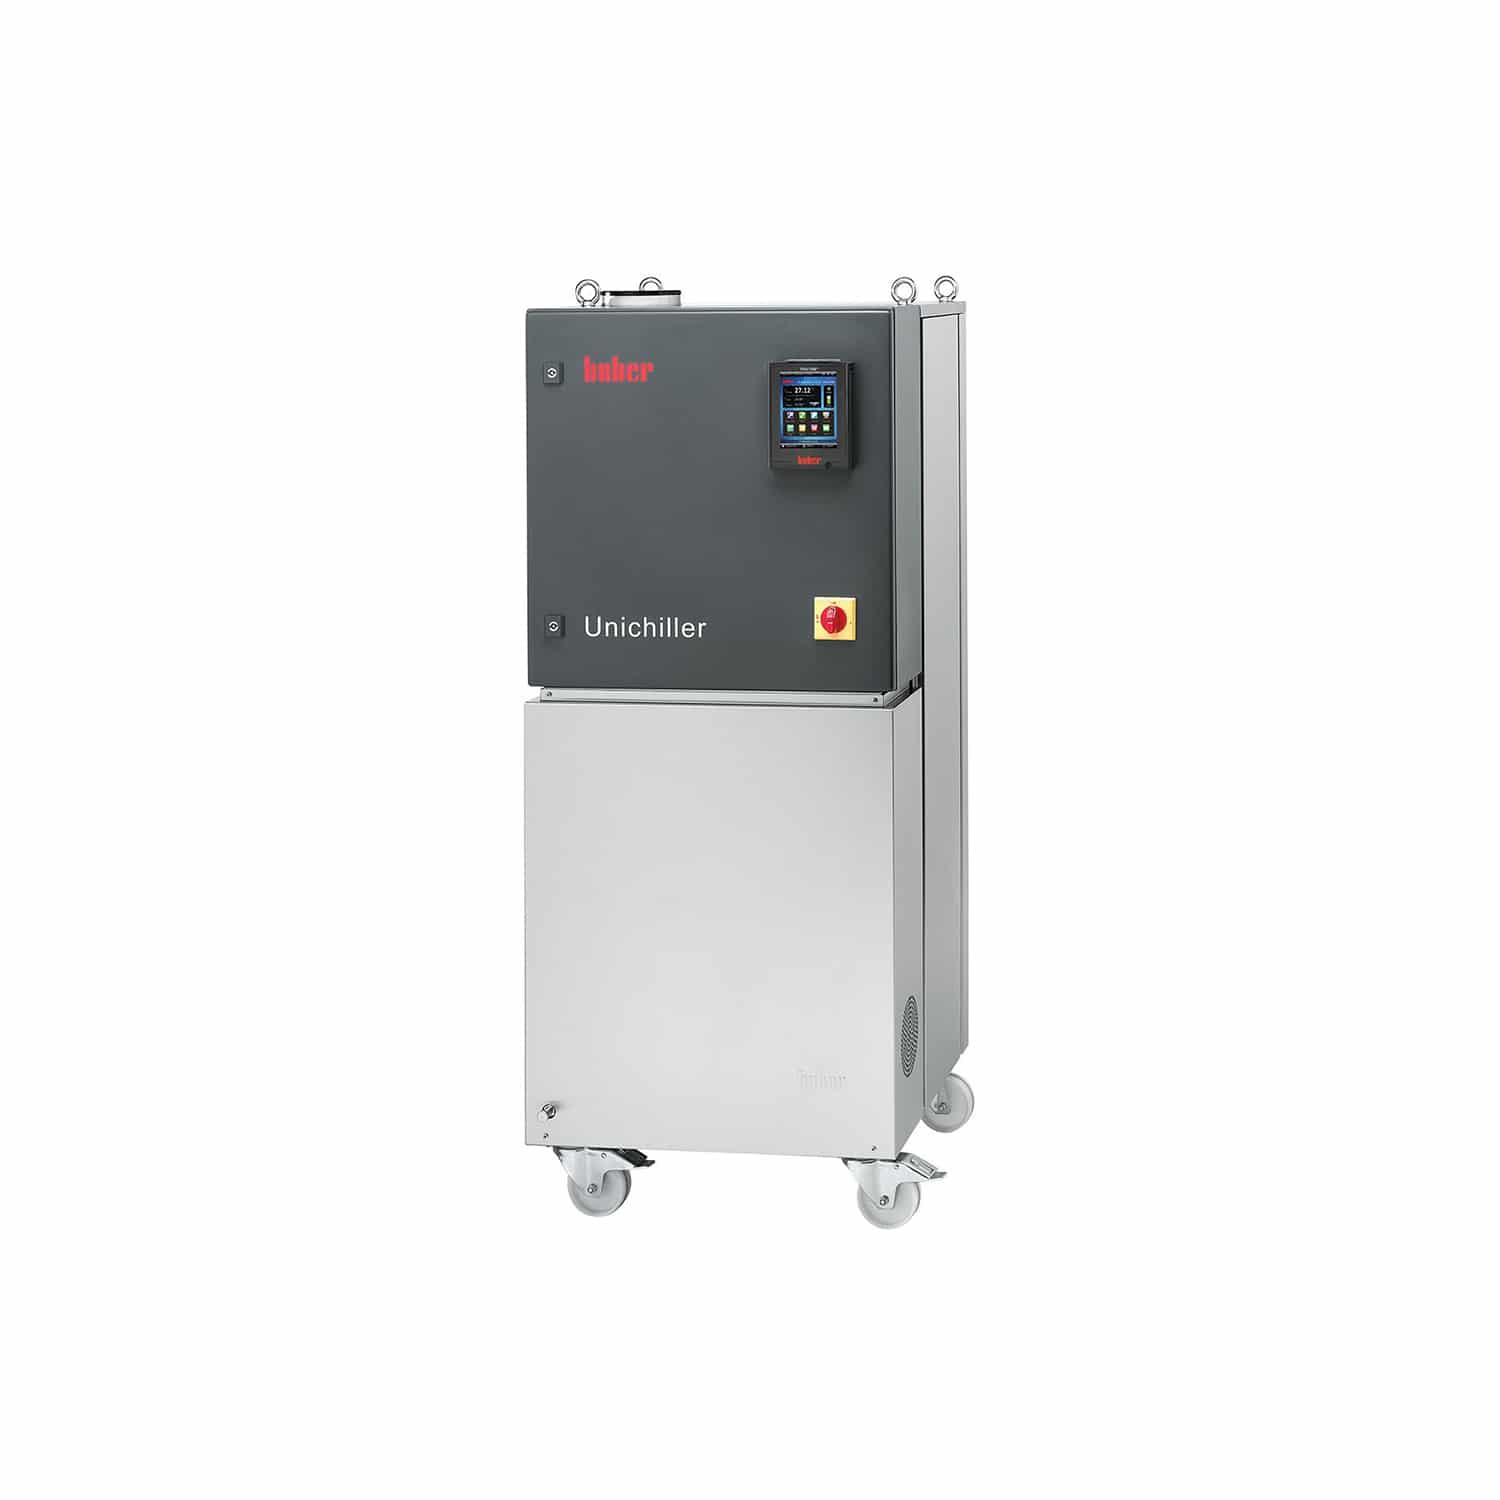 Buy a Huber UniChiller (500Tw) with Price Match Assurance.